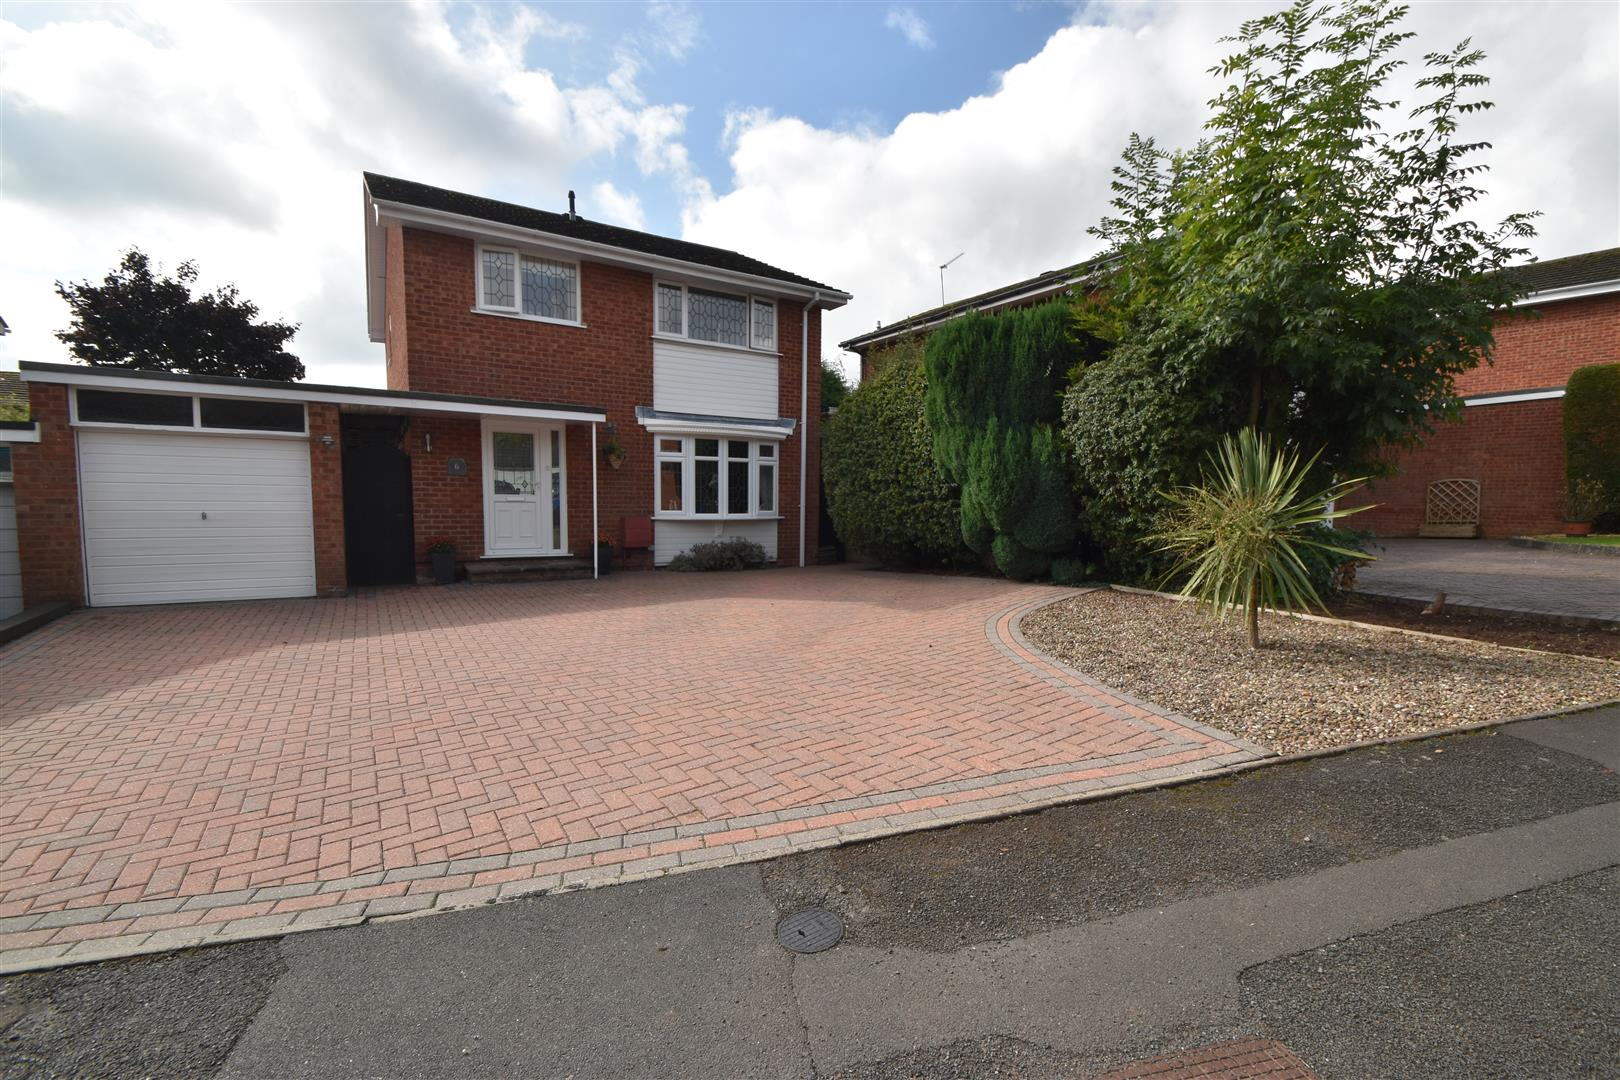 4 Bedrooms Detached House for sale in Leycroft, Droitwich